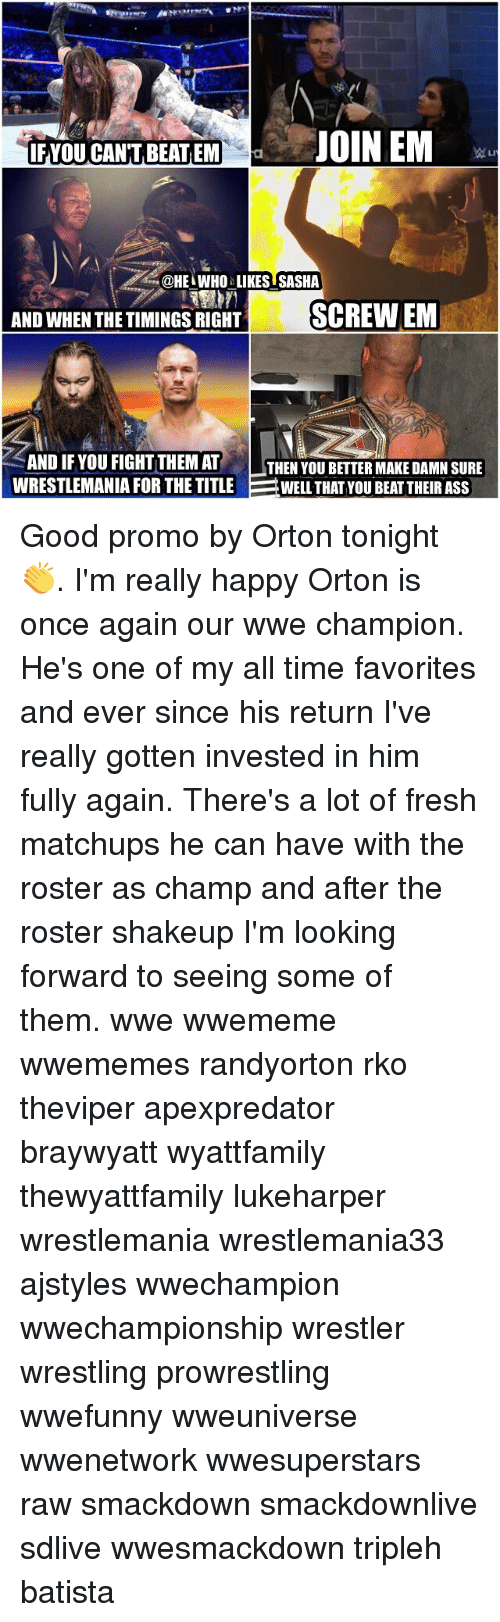 Ass, Fresh, and Memes: IF YOU CANTBEATEM  a3 JOIN EM  @HEL WHO LIKES SASHA  AND WHEN THE TIMINGS RIGHT  SCREW EM  AND IF YOU FIGHT THEM AT  LTHEN YOU BETTER MAKE DAMN SURE  WRESTLEMANIA FOR THE TITLE  WELL THAT YOU BEAT THEIR ASS Good promo by Orton tonight 👏. I'm really happy Orton is once again our wwe champion. He's one of my all time favorites and ever since his return I've really gotten invested in him fully again. There's a lot of fresh matchups he can have with the roster as champ and after the roster shakeup I'm looking forward to seeing some of them. wwe wwememe wwememes randyorton rko theviper apexpredator braywyatt wyattfamily thewyattfamily lukeharper wrestlemania wrestlemania33 ajstyles wwechampion wwechampionship wrestler wrestling prowrestling wwefunny wweuniverse wwenetwork wwesuperstars raw smackdown smackdownlive sdlive wwesmackdown tripleh batista